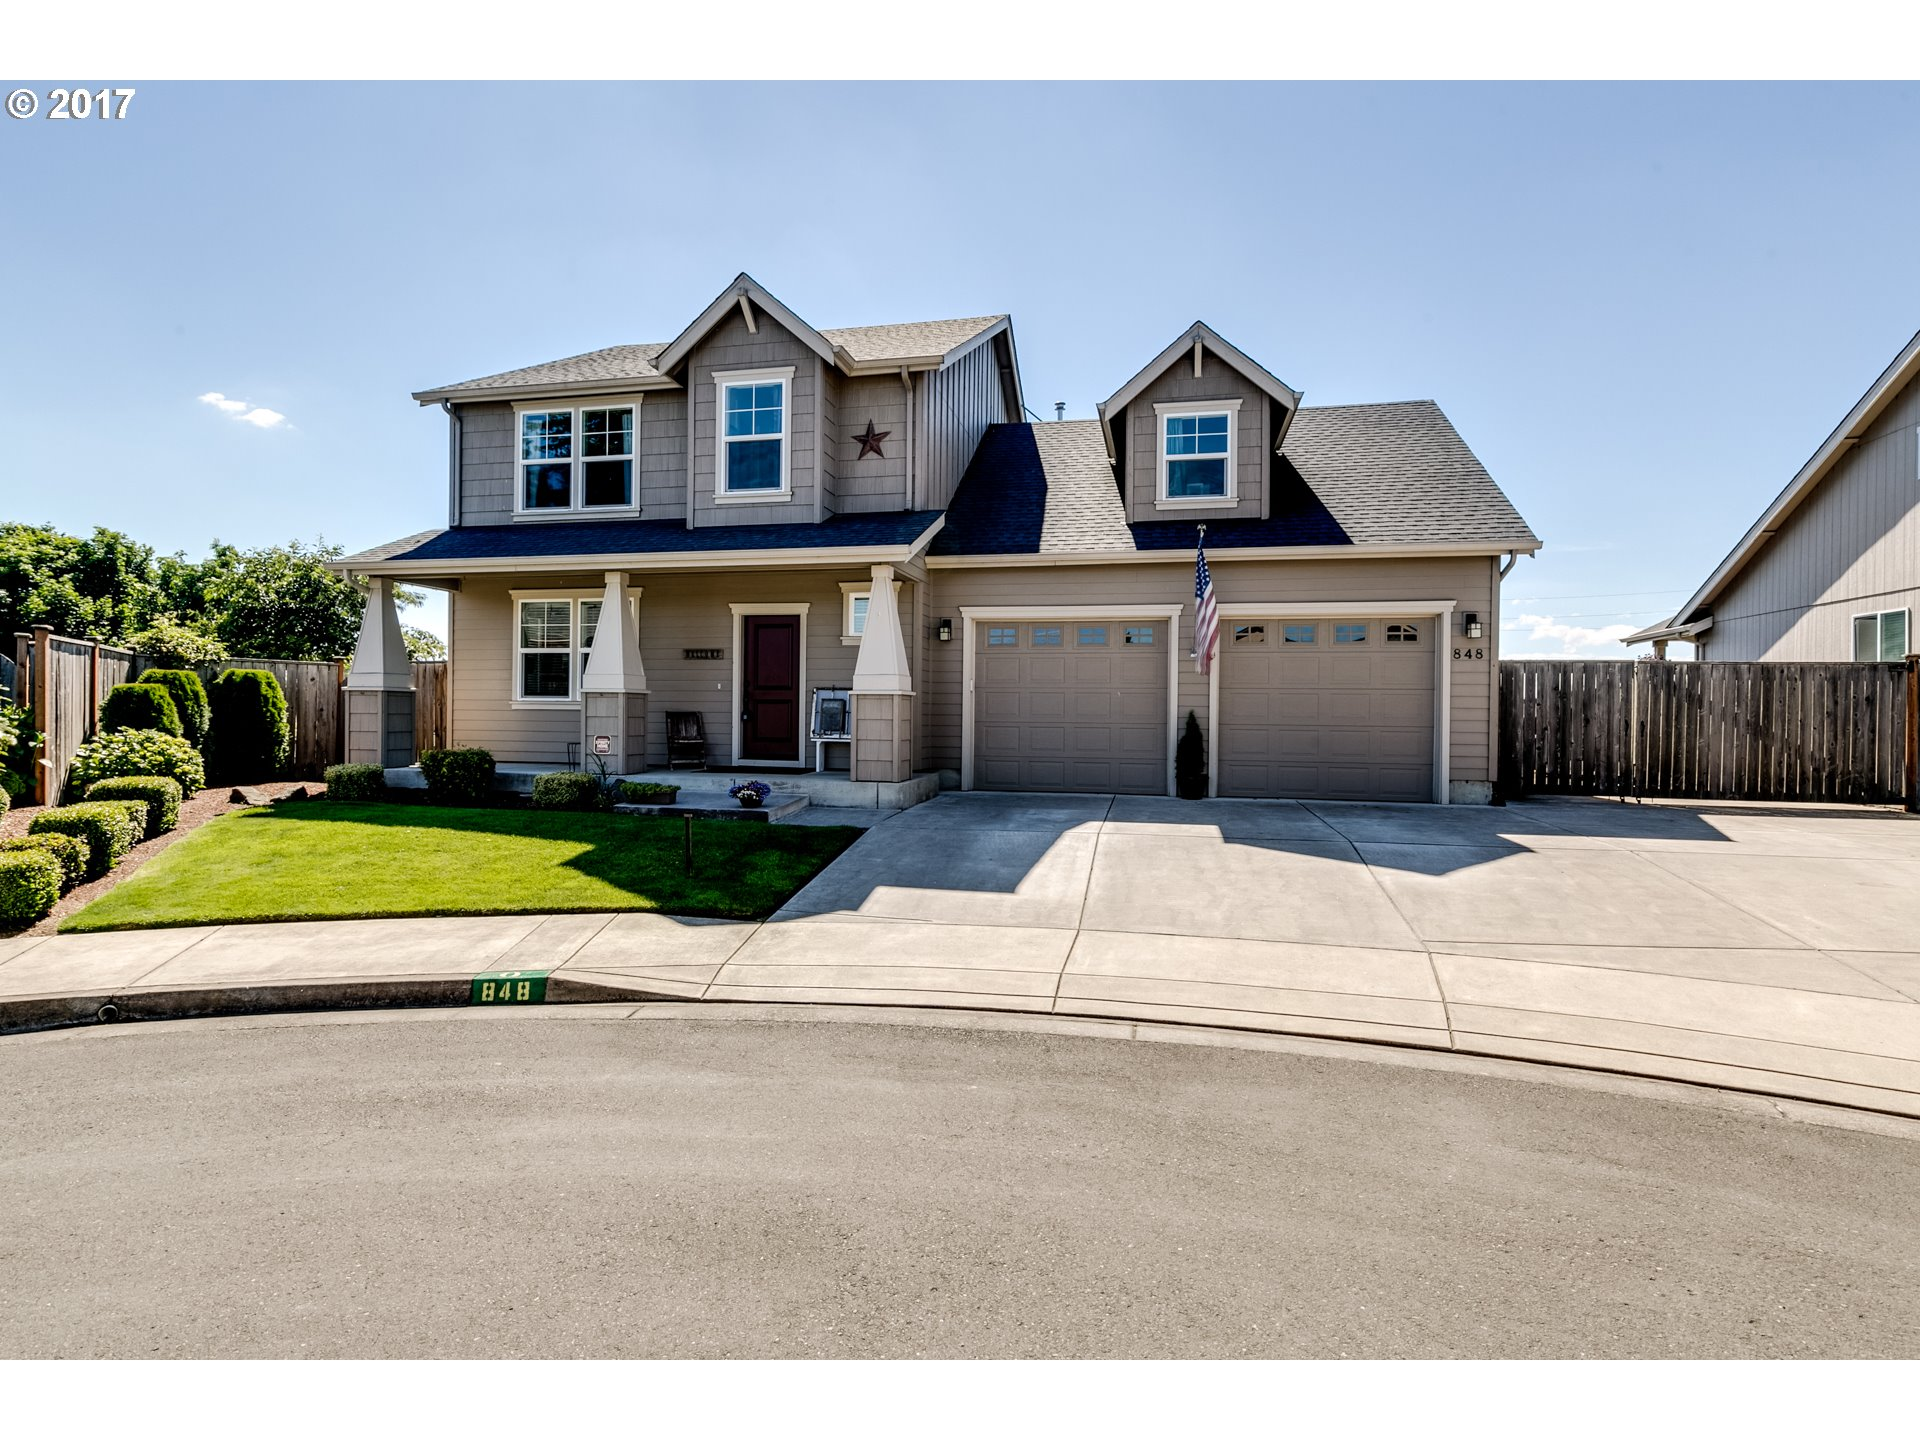 848 S 31ST PL, Springfield, OR 97478